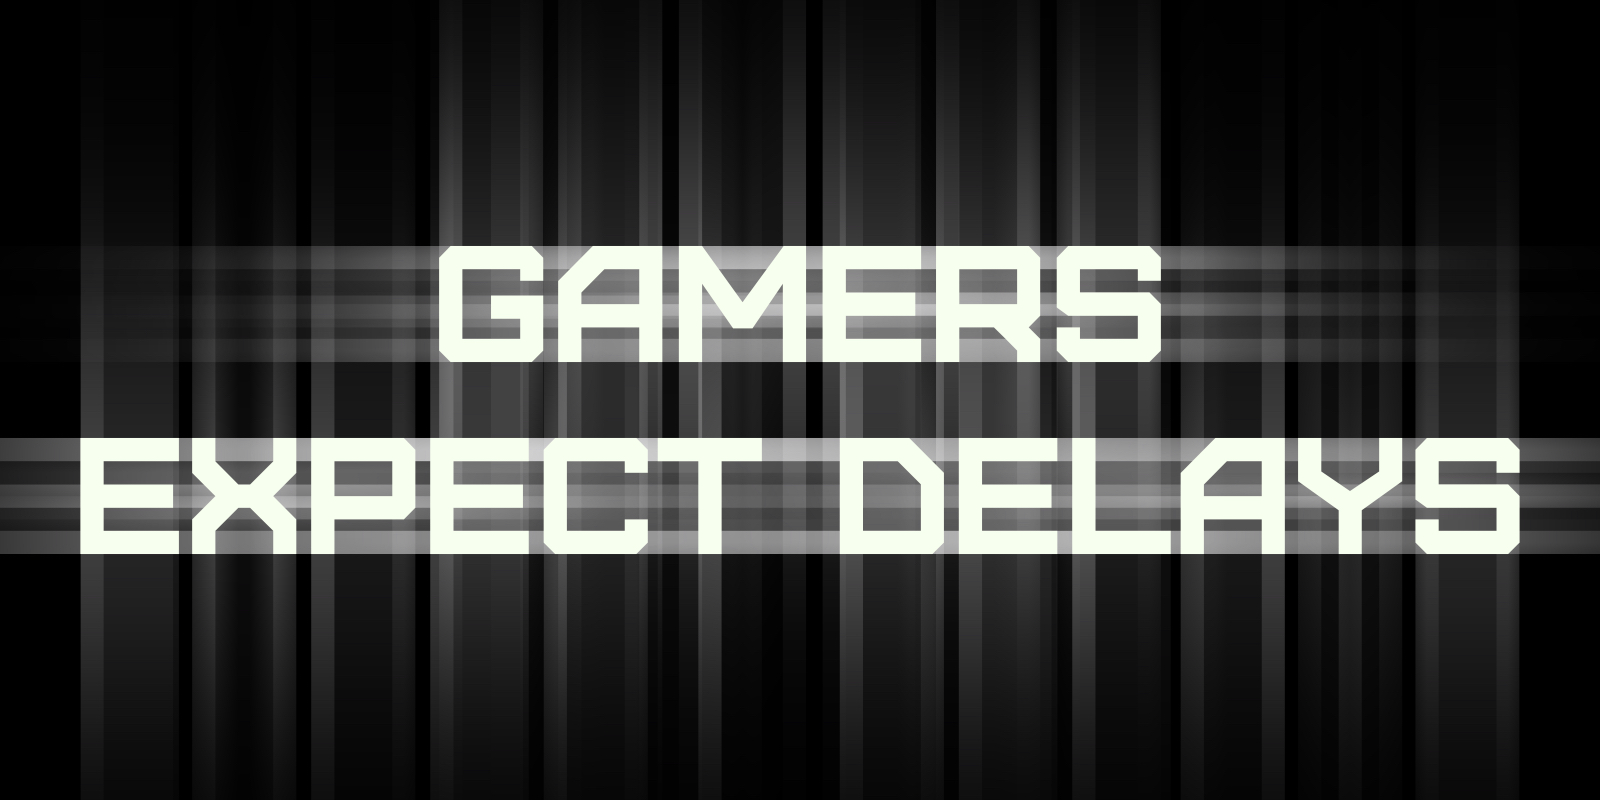 gamers-expect-delays